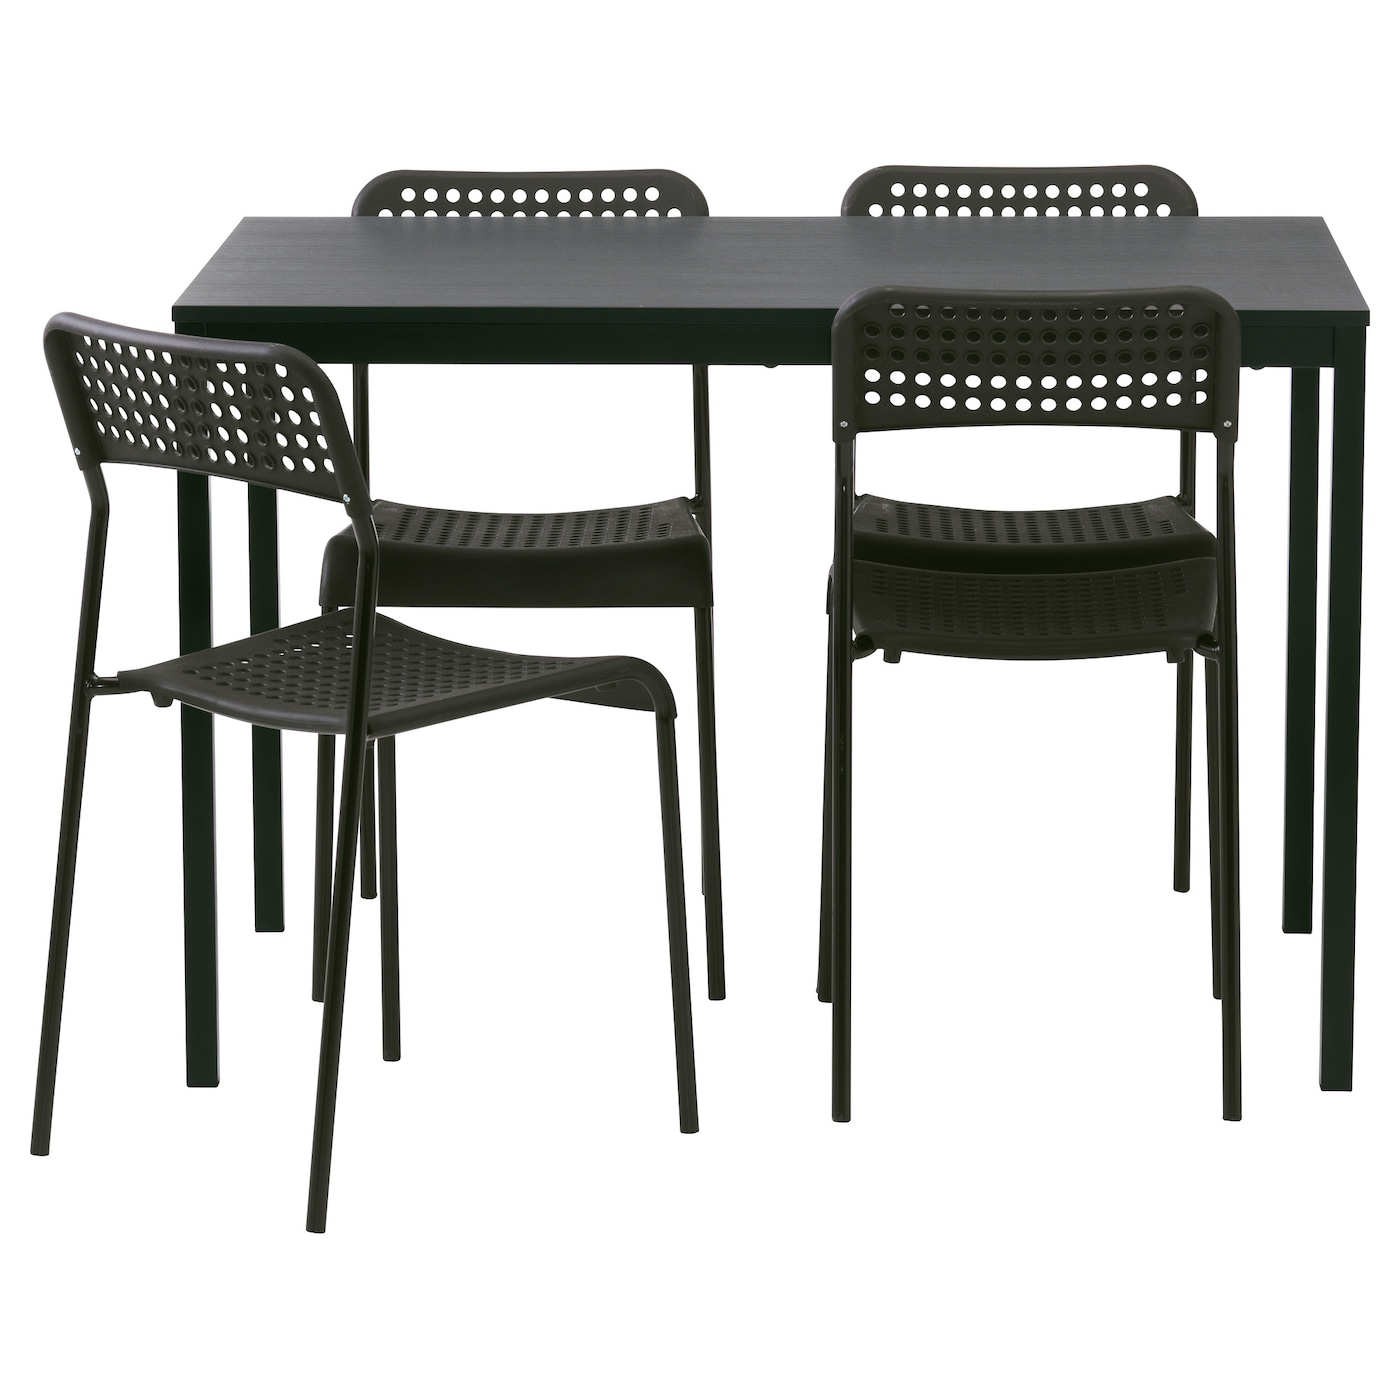 IKEA TÄRENDÖ/ADDE table and 4 chairs